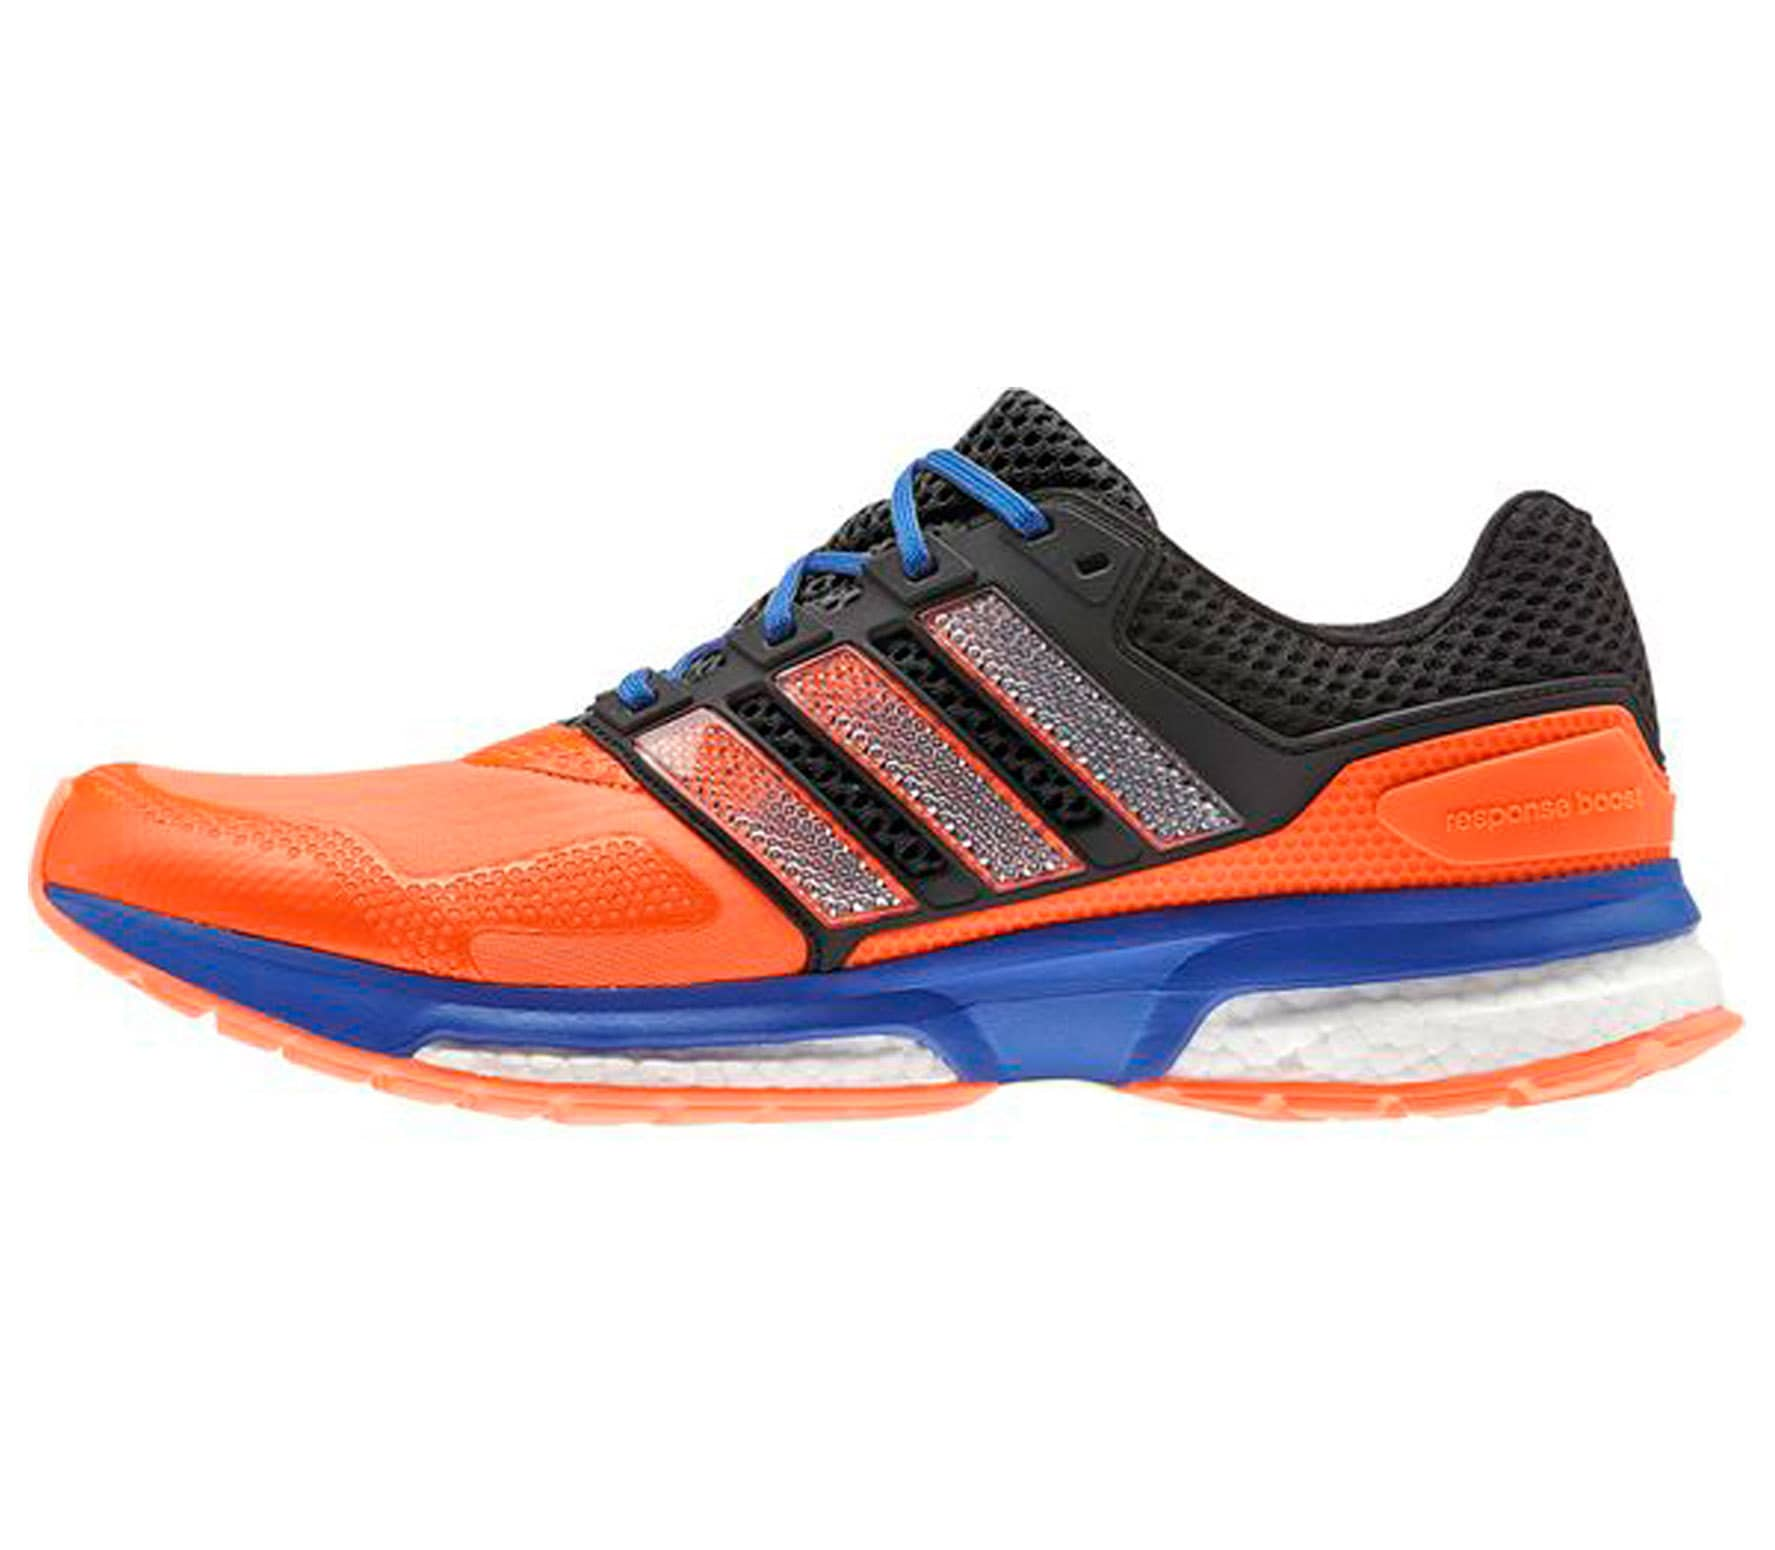 Adidas - Response Boost 2 Techfit men s running shoes (orange blue ... a74ed9403